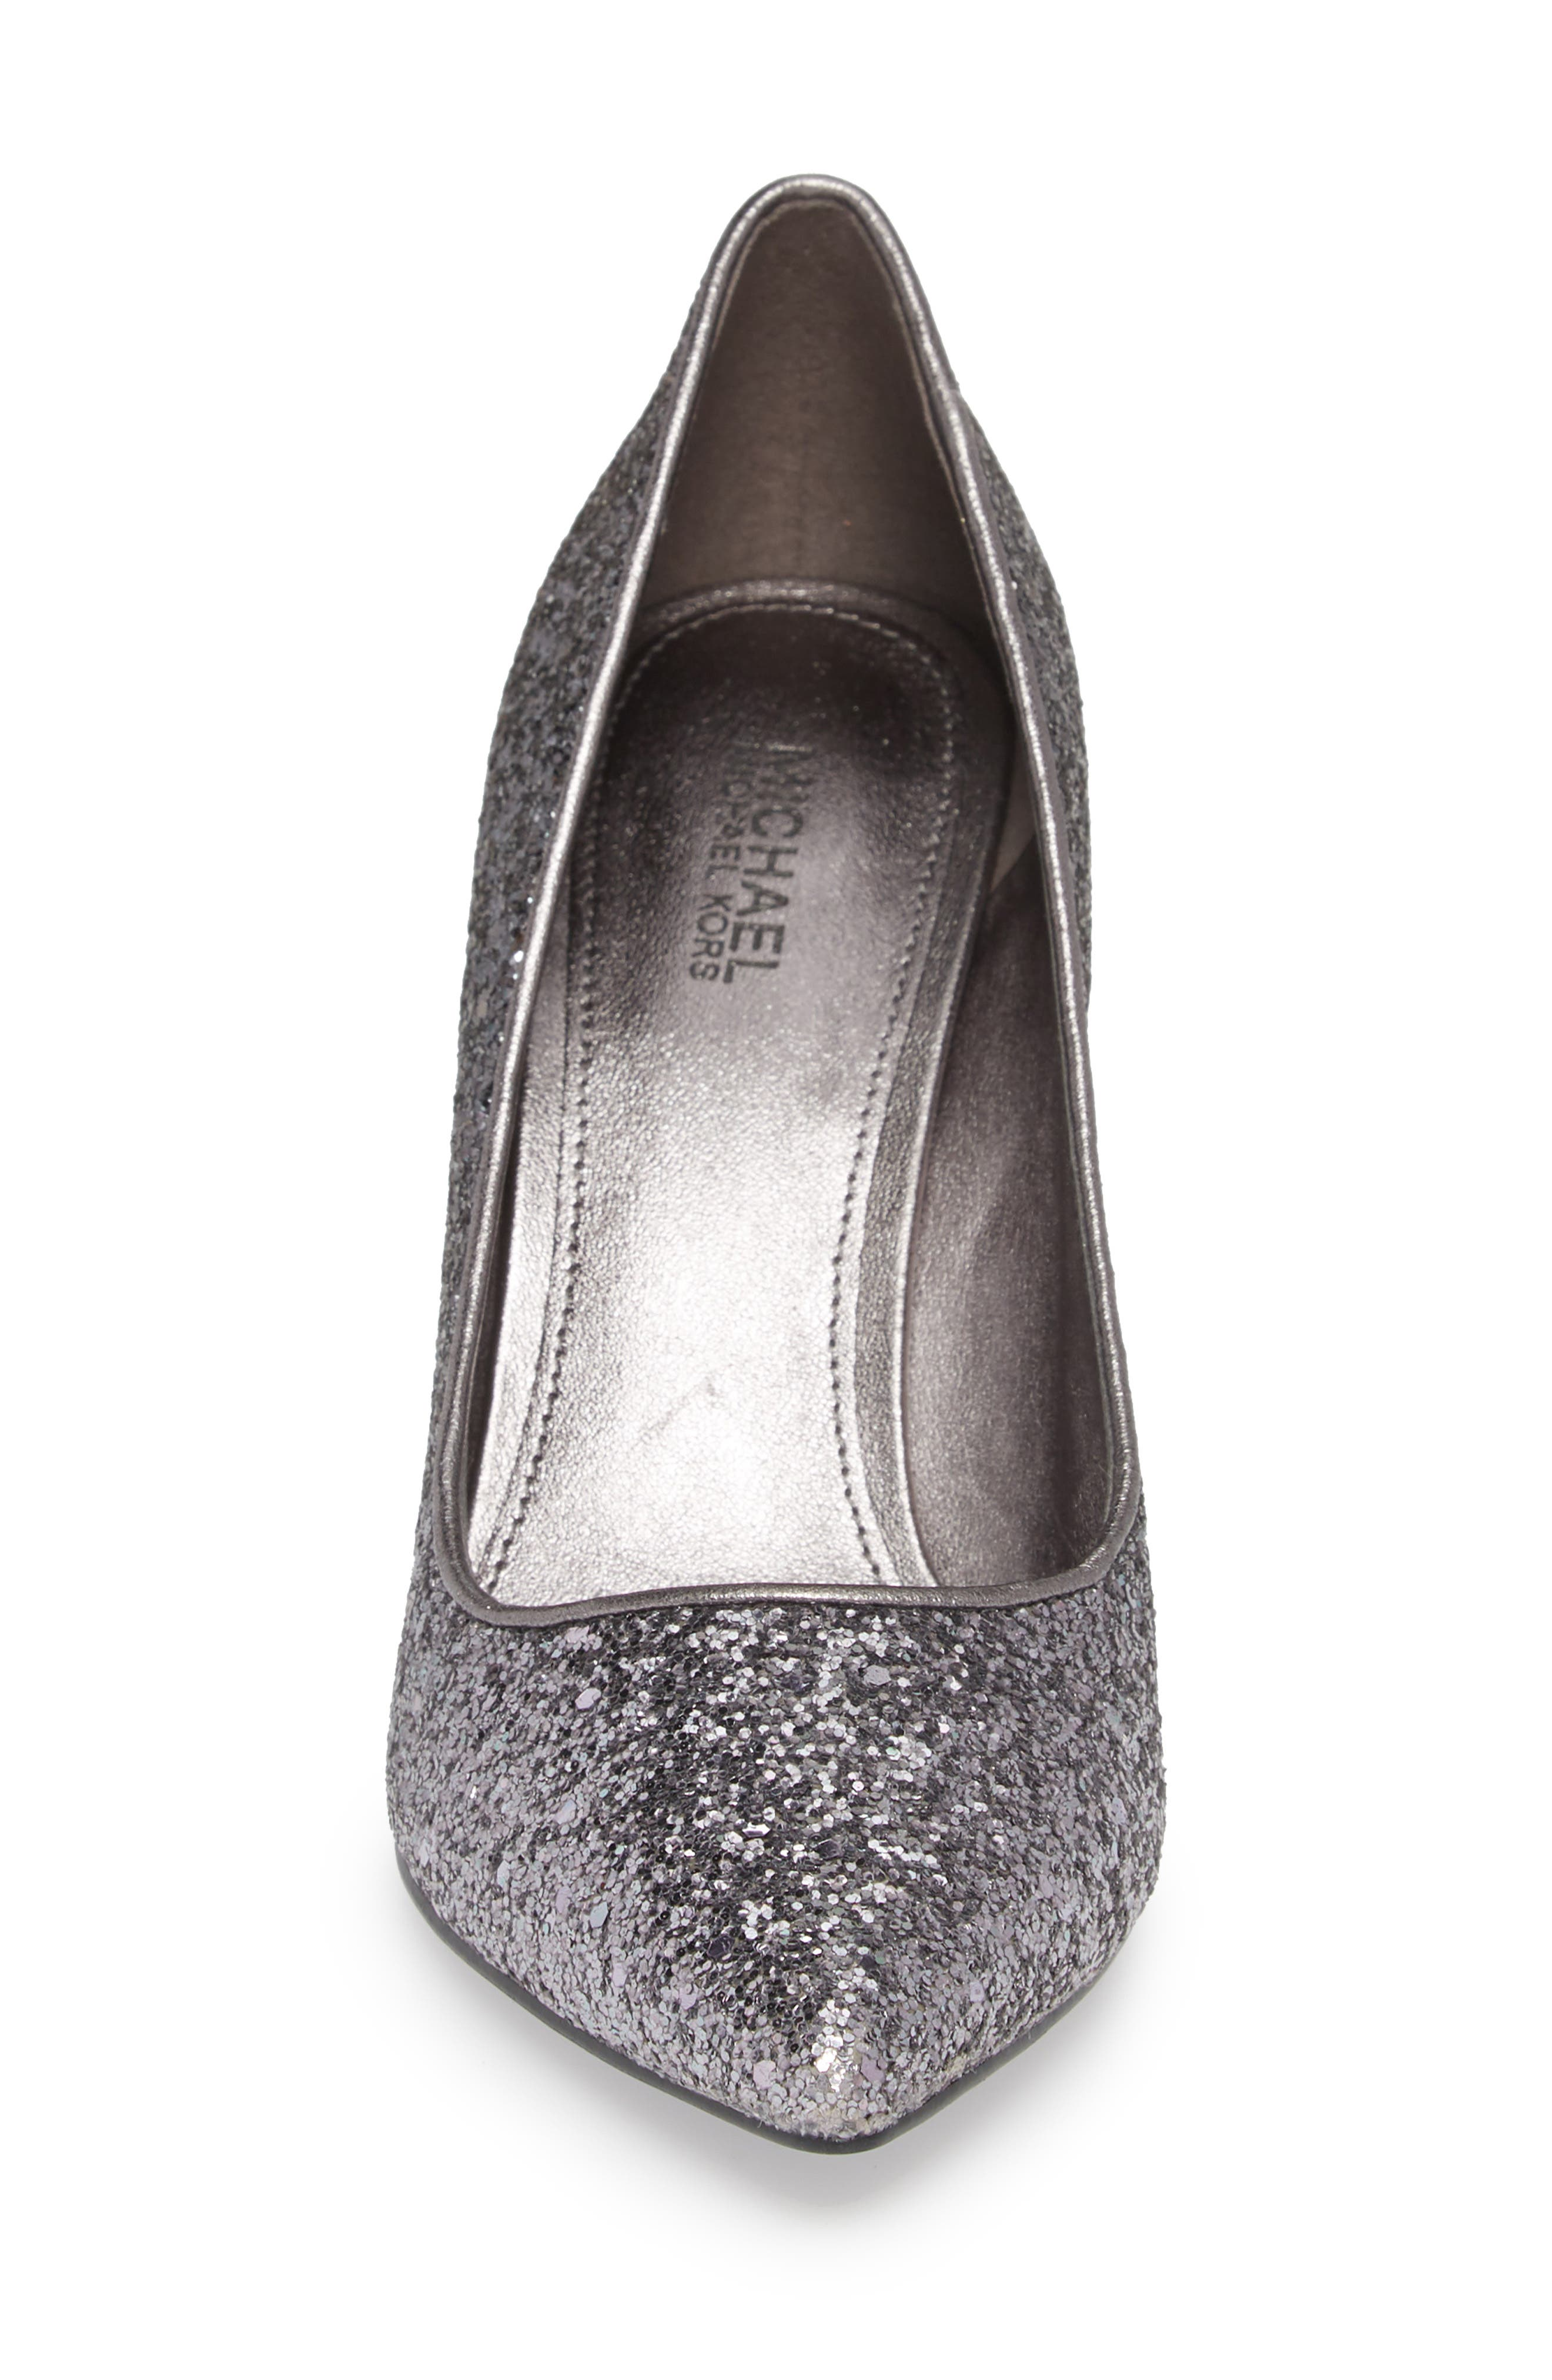 Claire Pointy Toe Pump,                             Alternate thumbnail 4, color,                             GUNMETAL GLITTER FABRIC